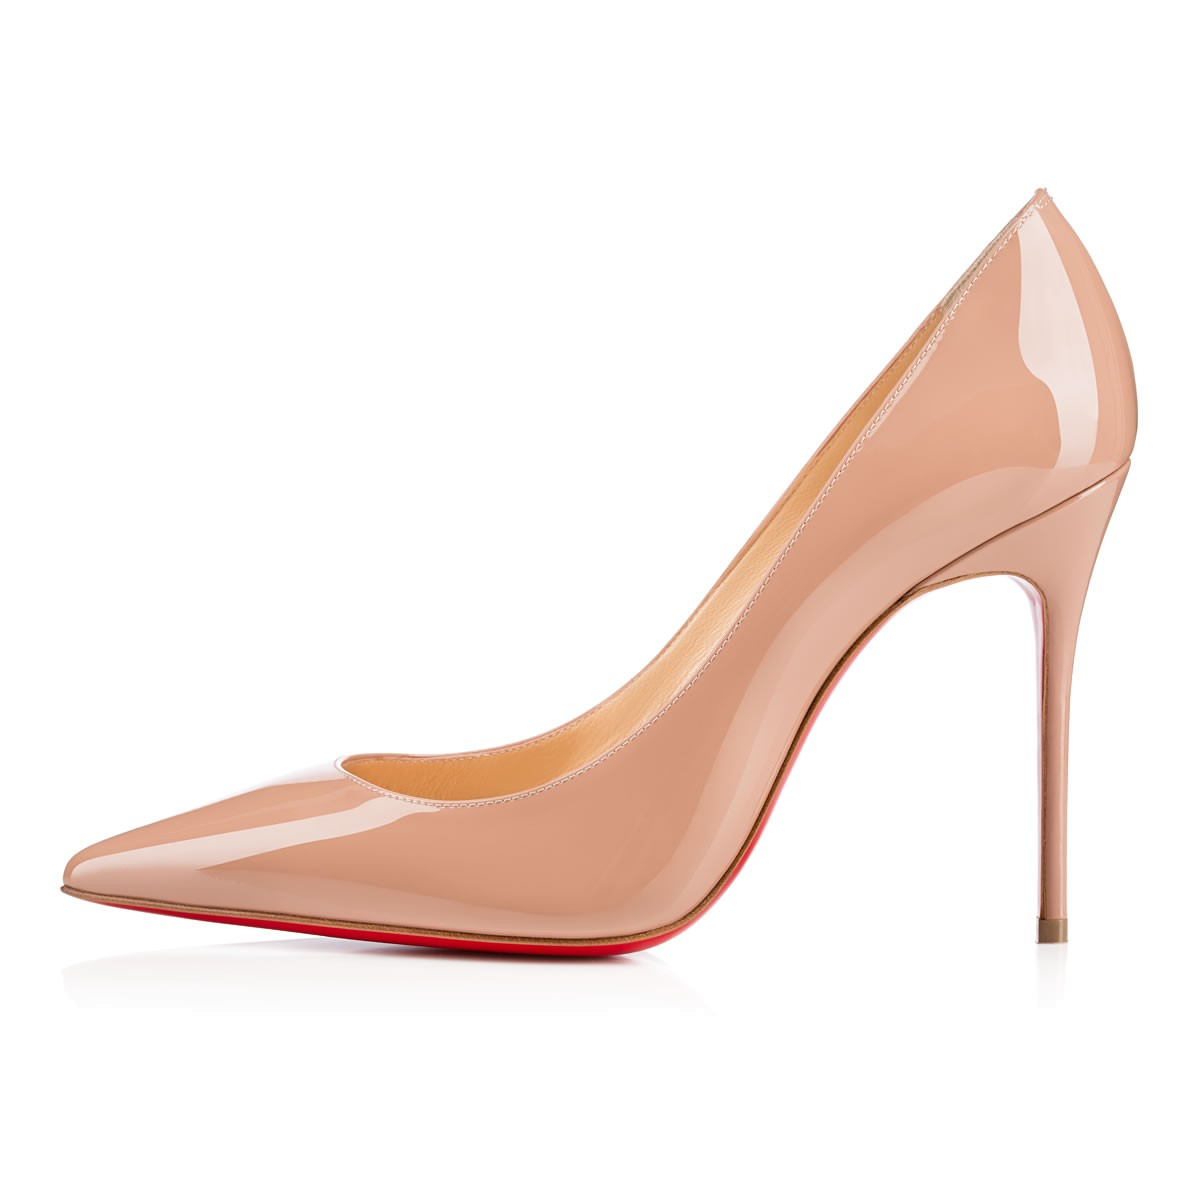 christian louboutin prices in paris